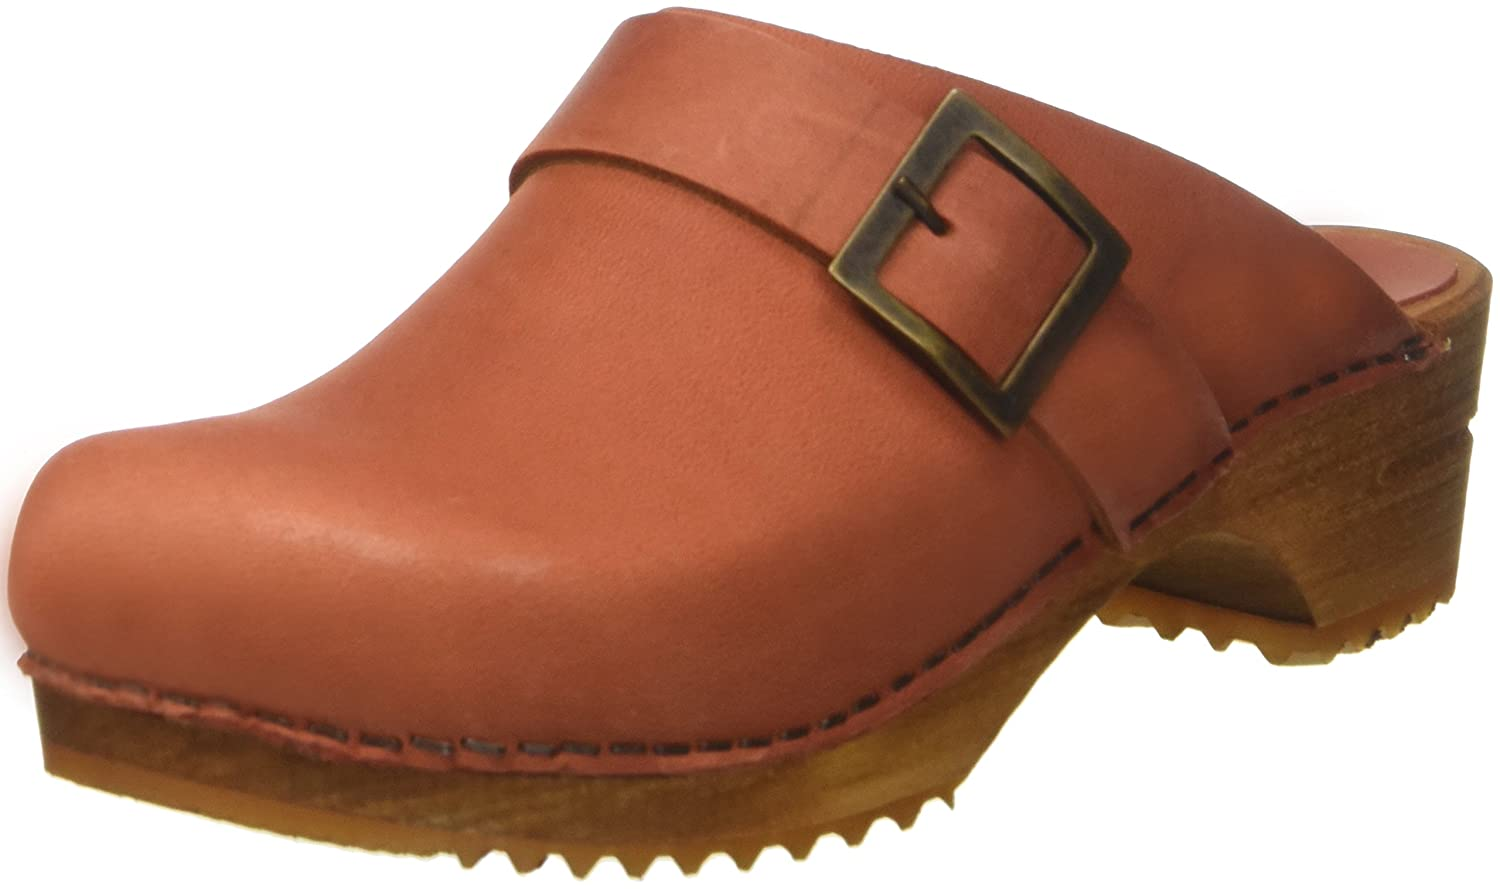 Rot (Burned Orange) Sanita Damen Urban Open Clogs